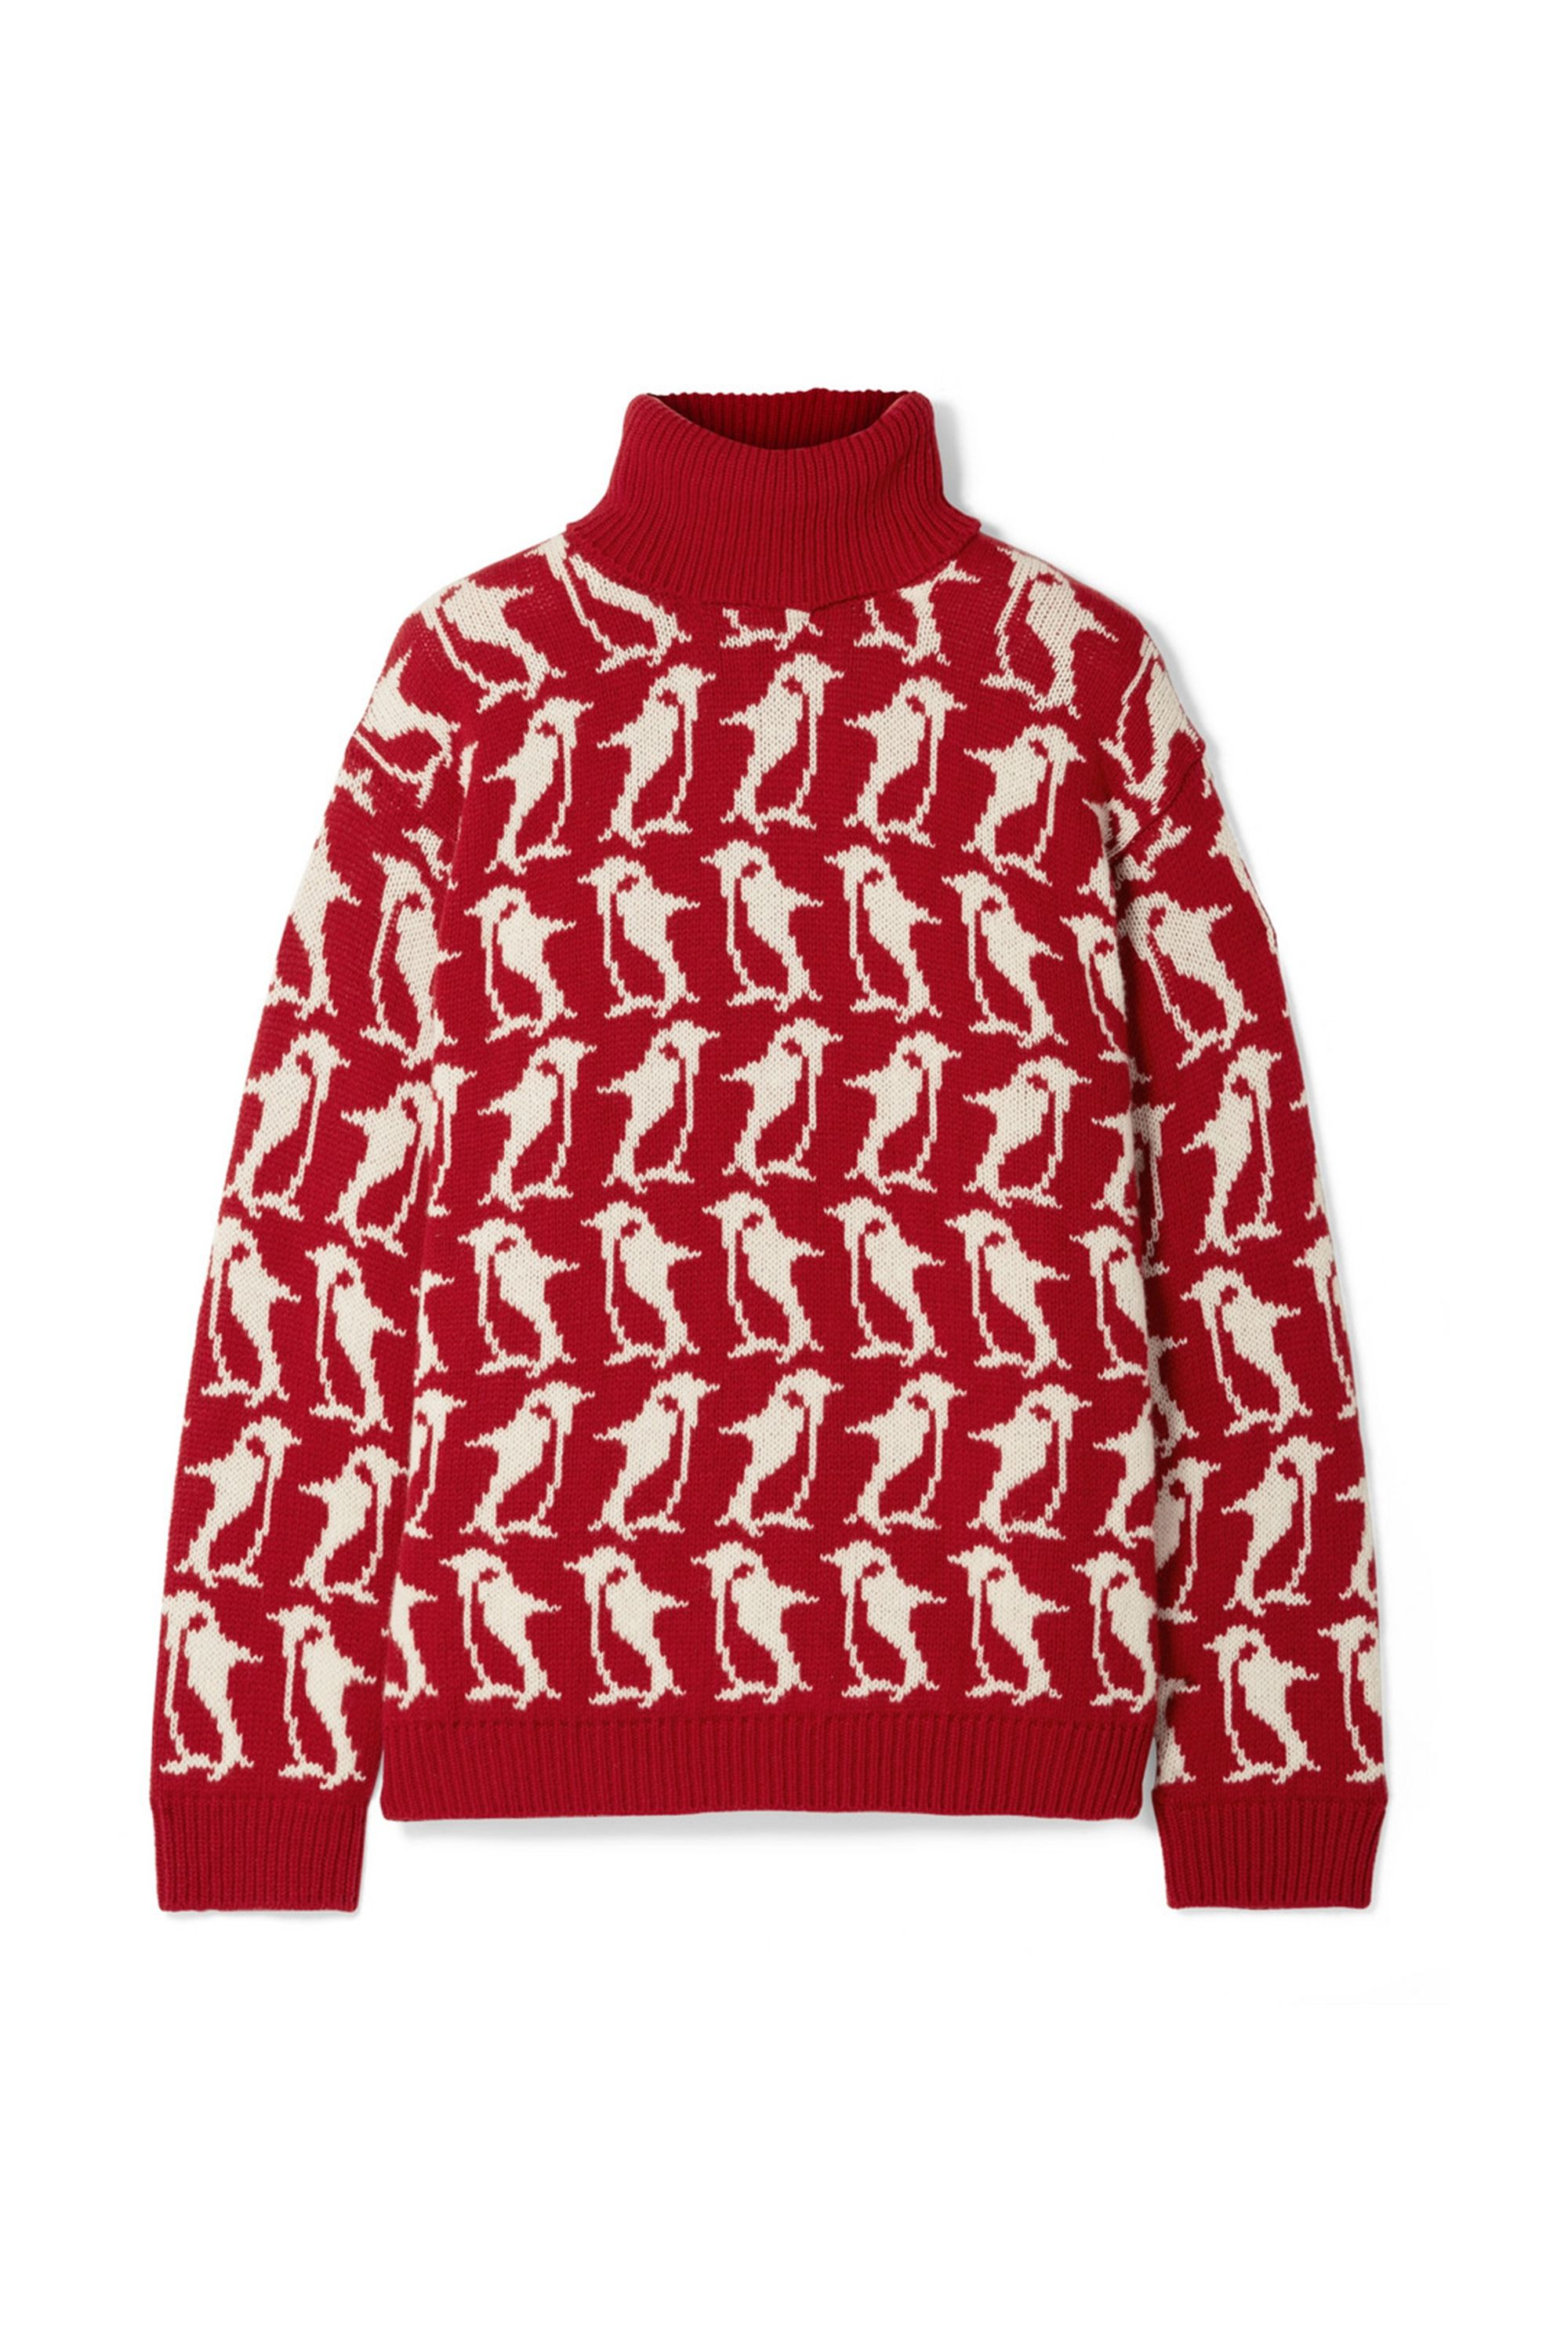 Sweater Christmas Spirit Christmas Jumper Women/'s Red